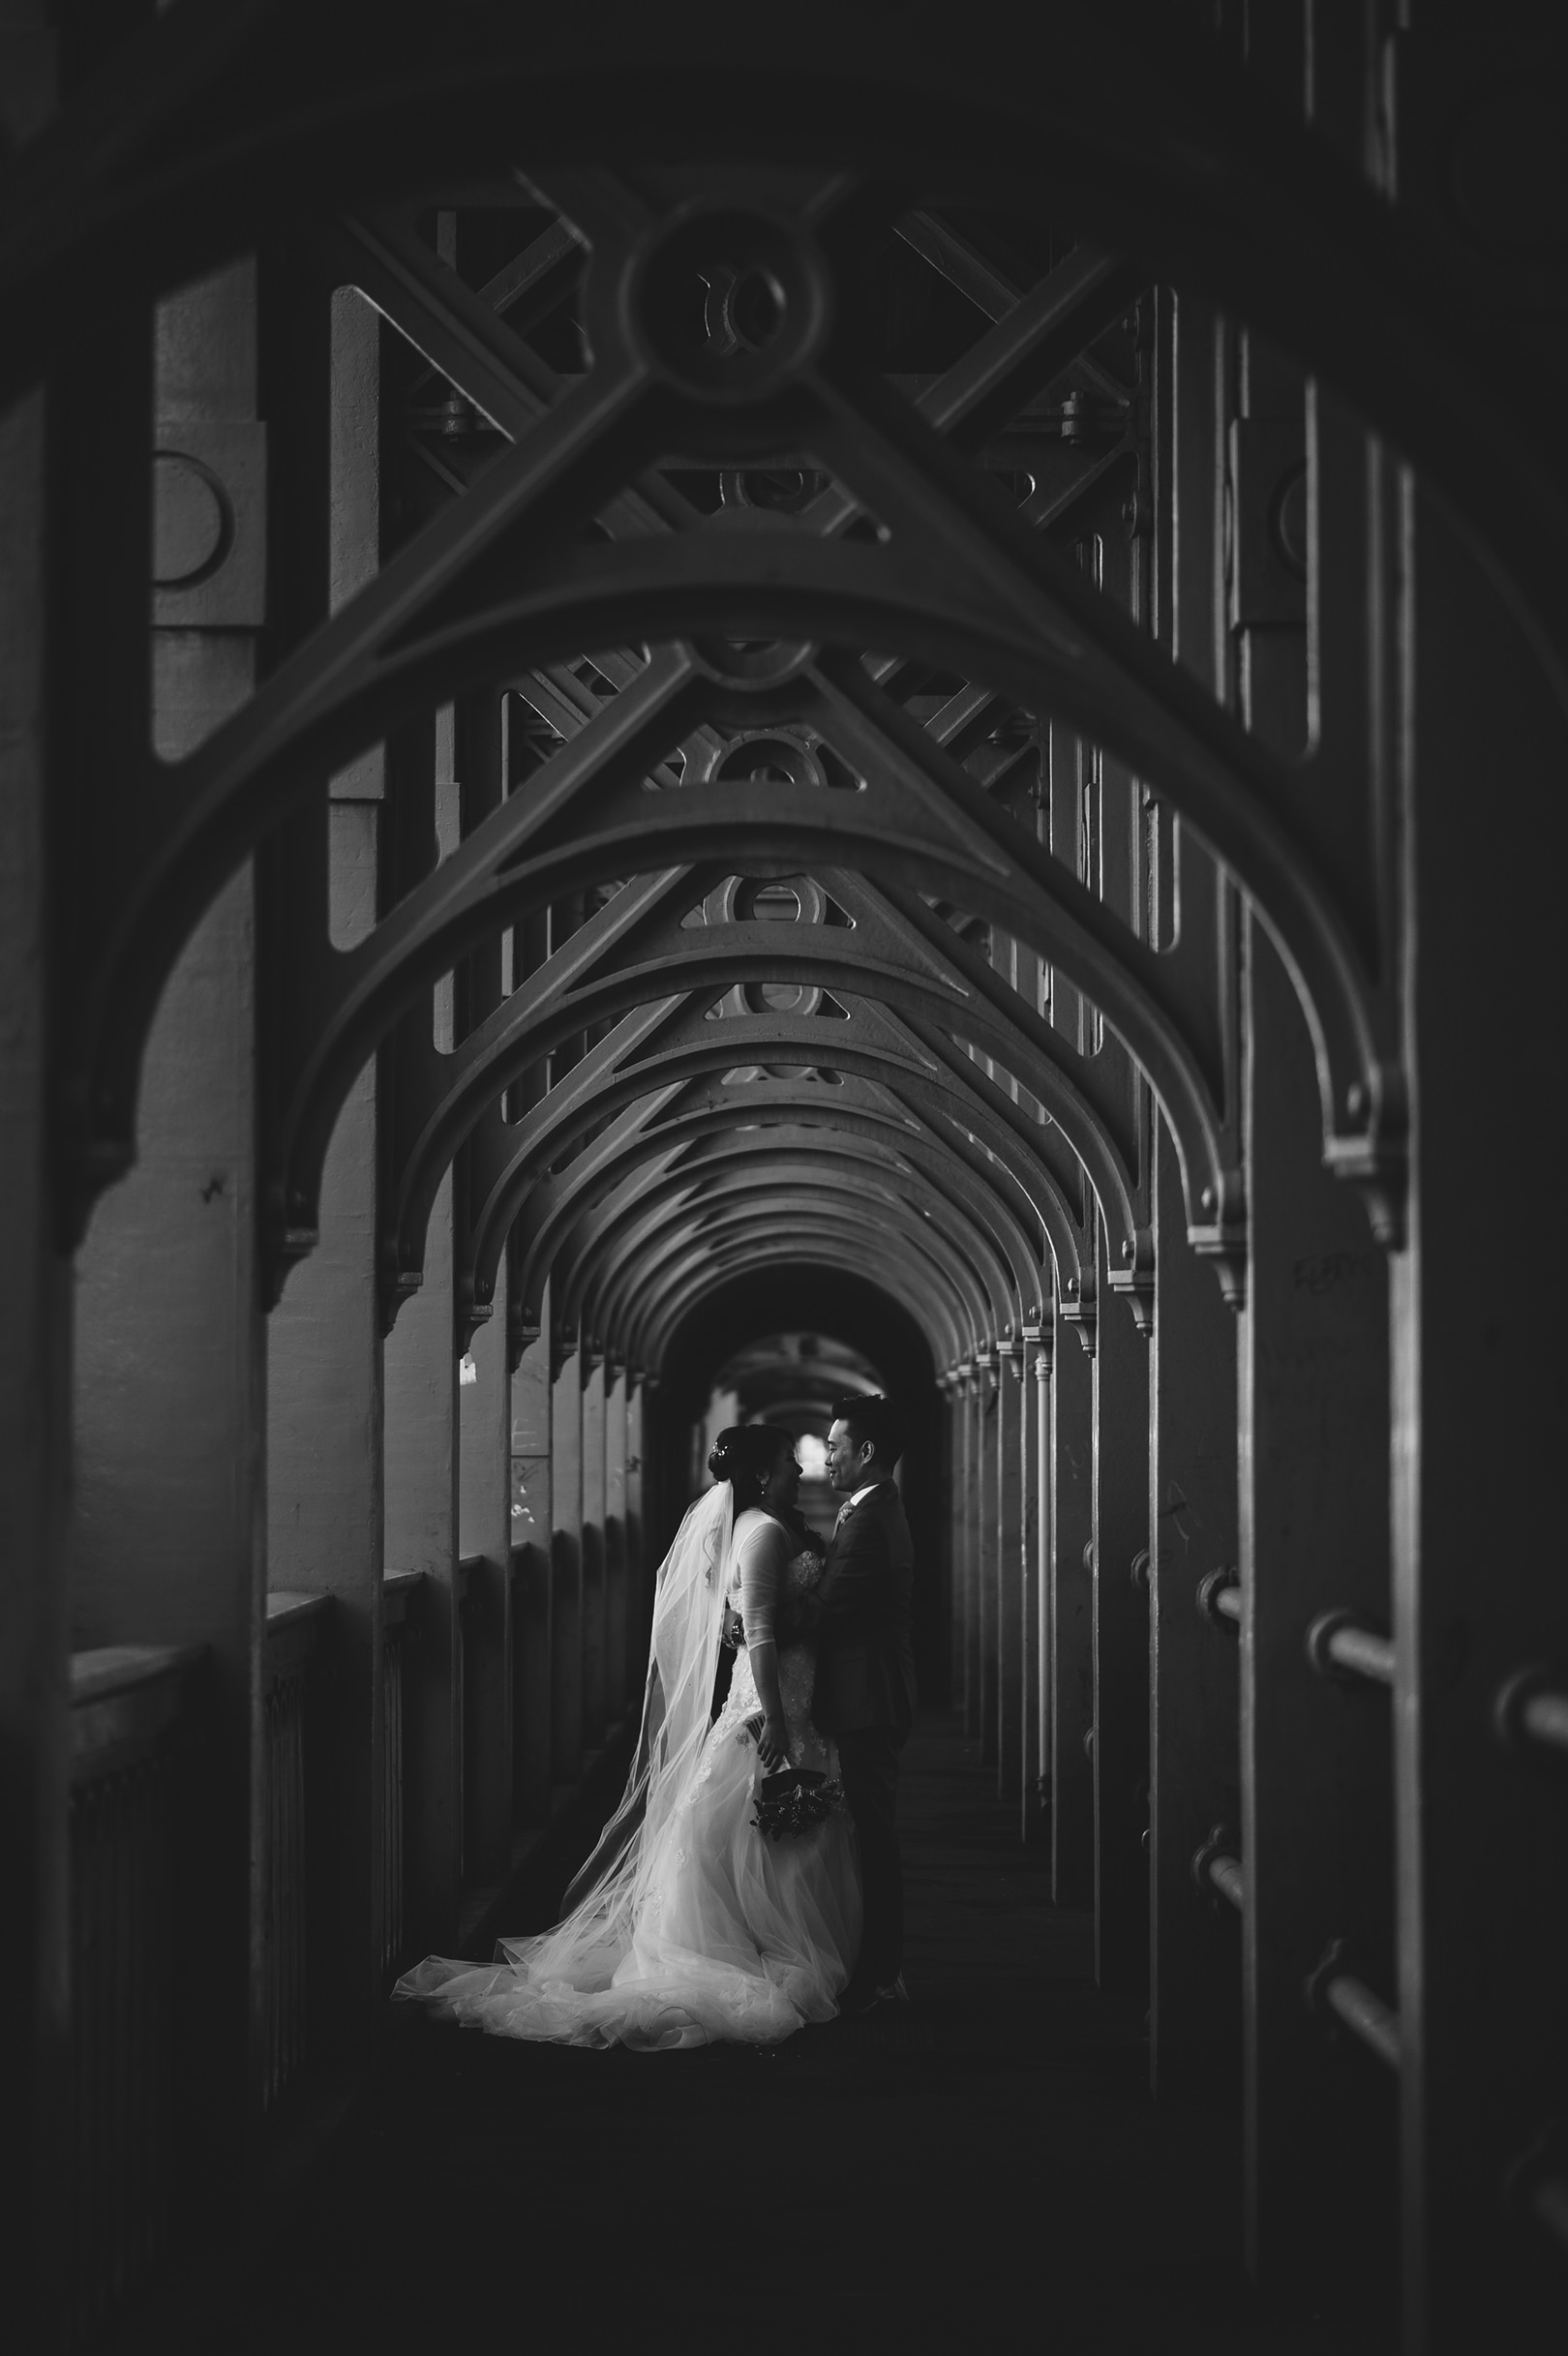 Spain Wedding Photographer - © Dallas Kolotylo Photography - 081